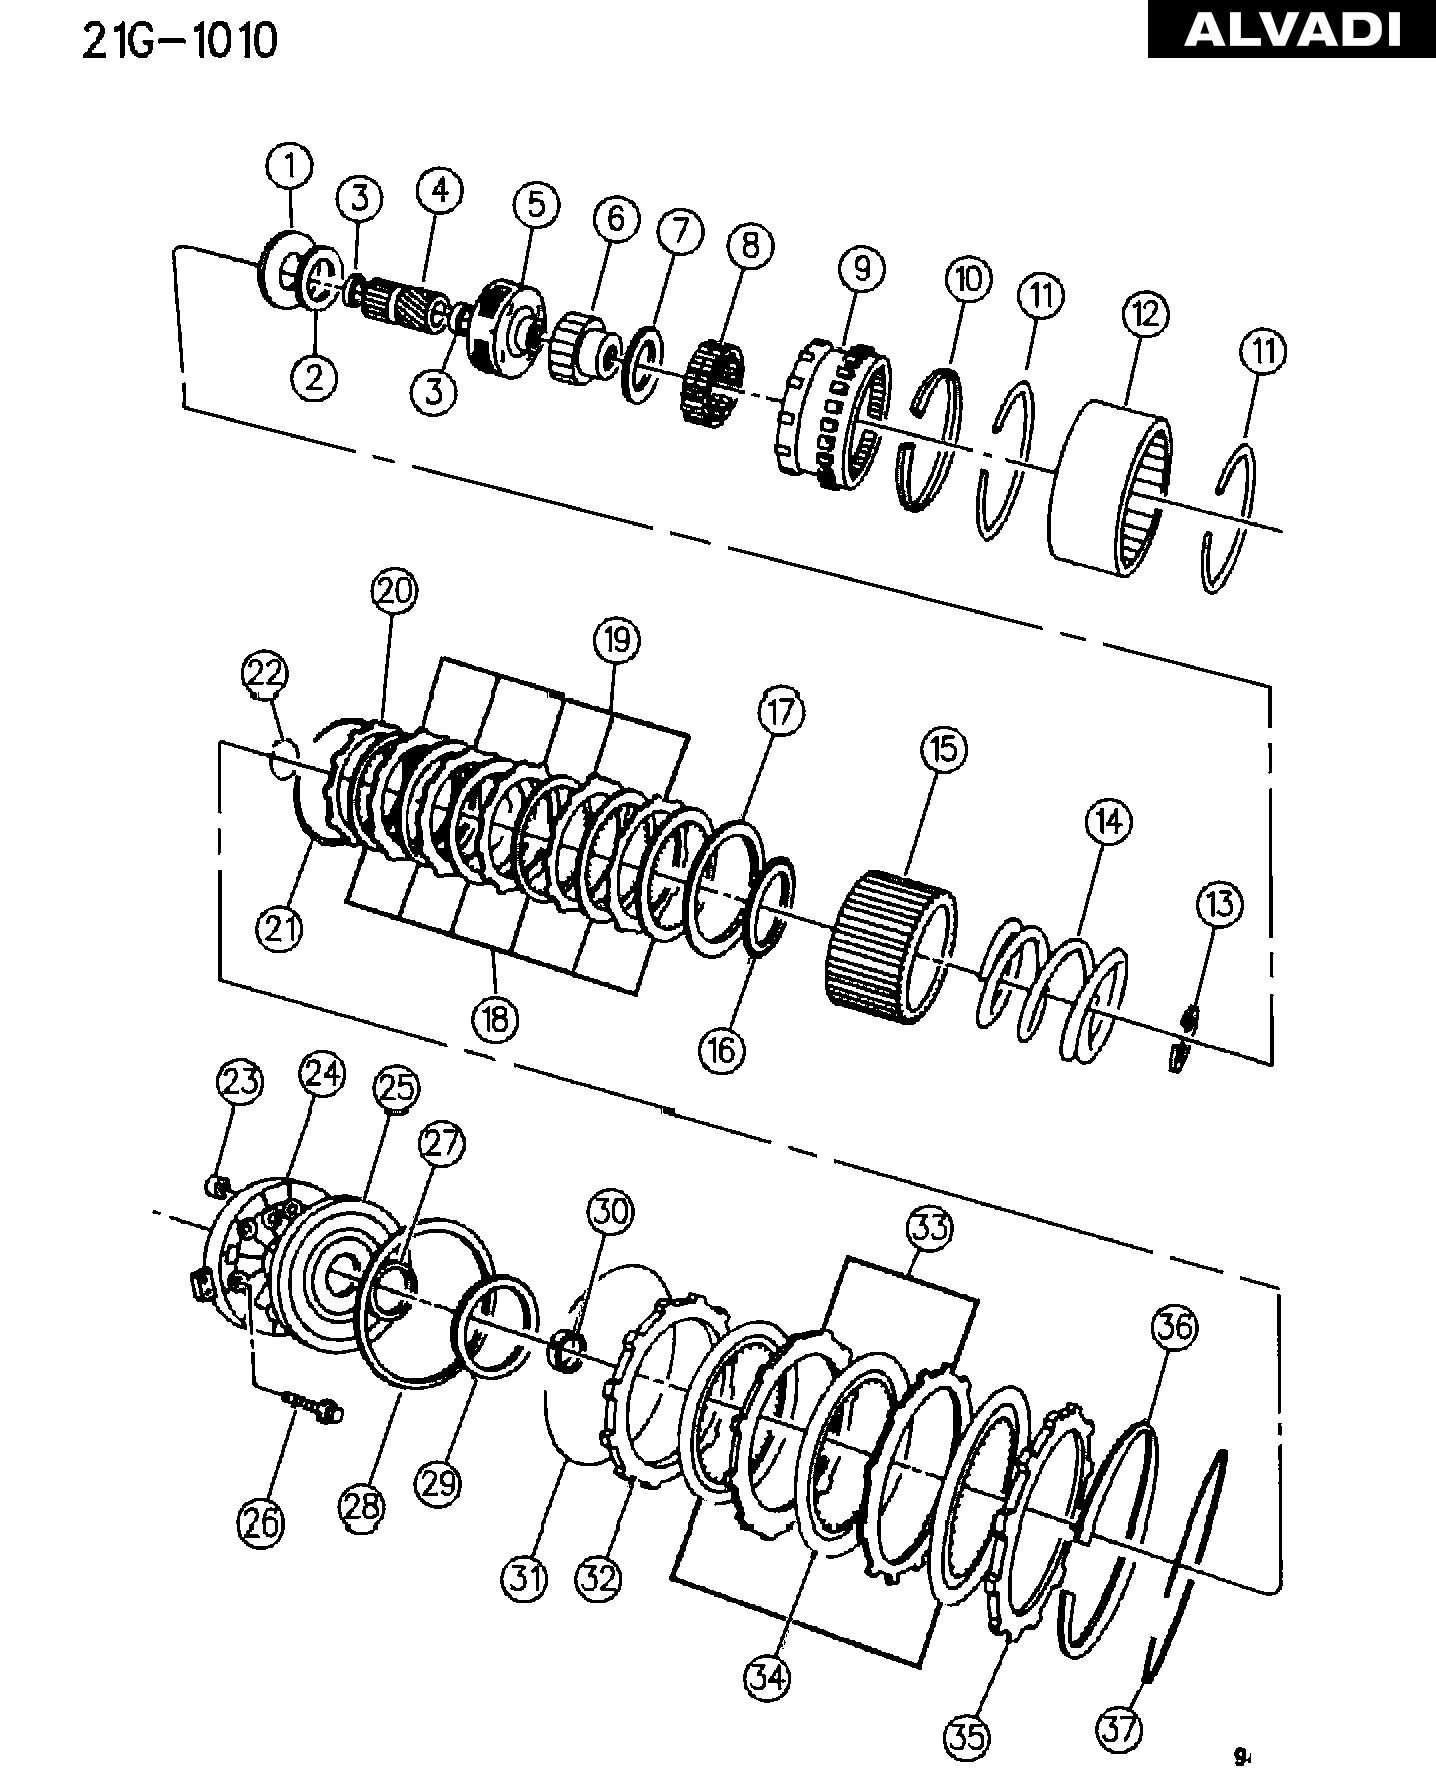 Manual Transmission Clutch Diagram My Wiring Diagram